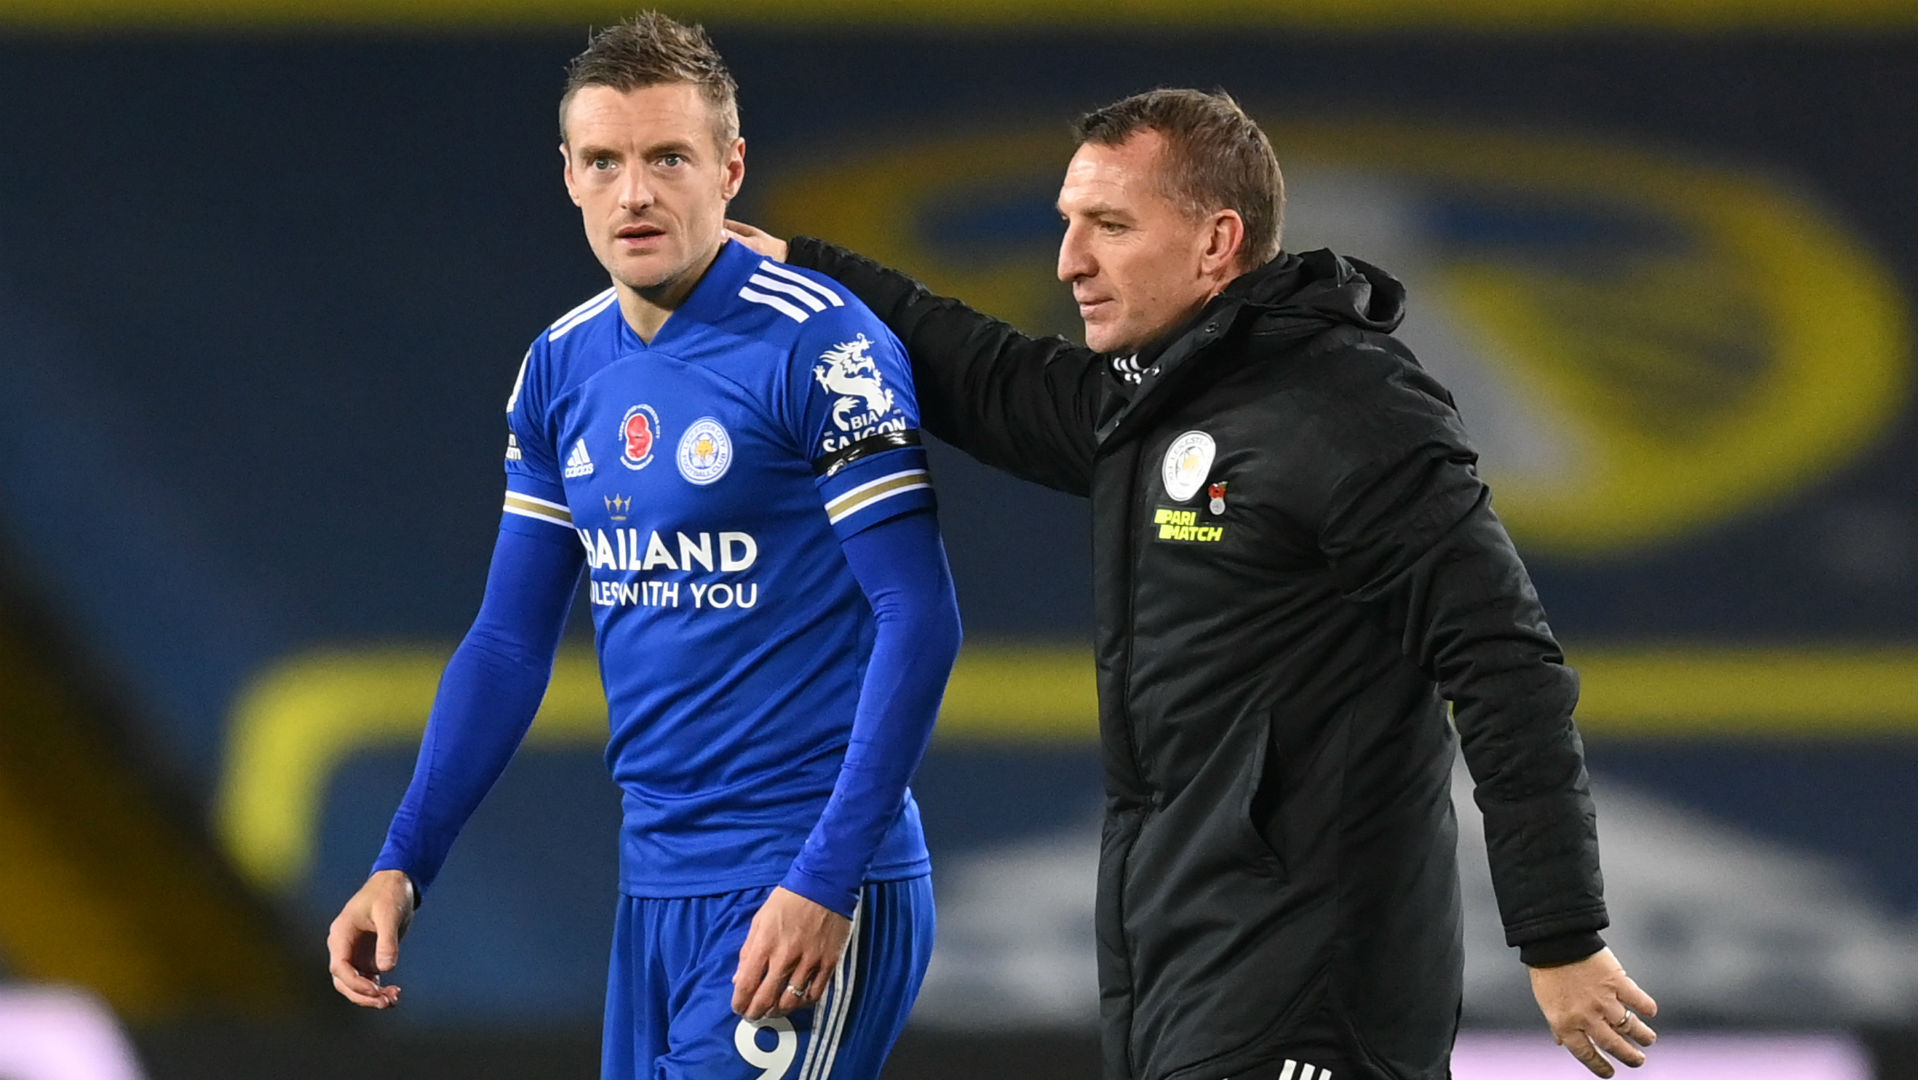 Vardy fit to face Man Utd as Rodgers hails Solskjaer's 'fantastic' work